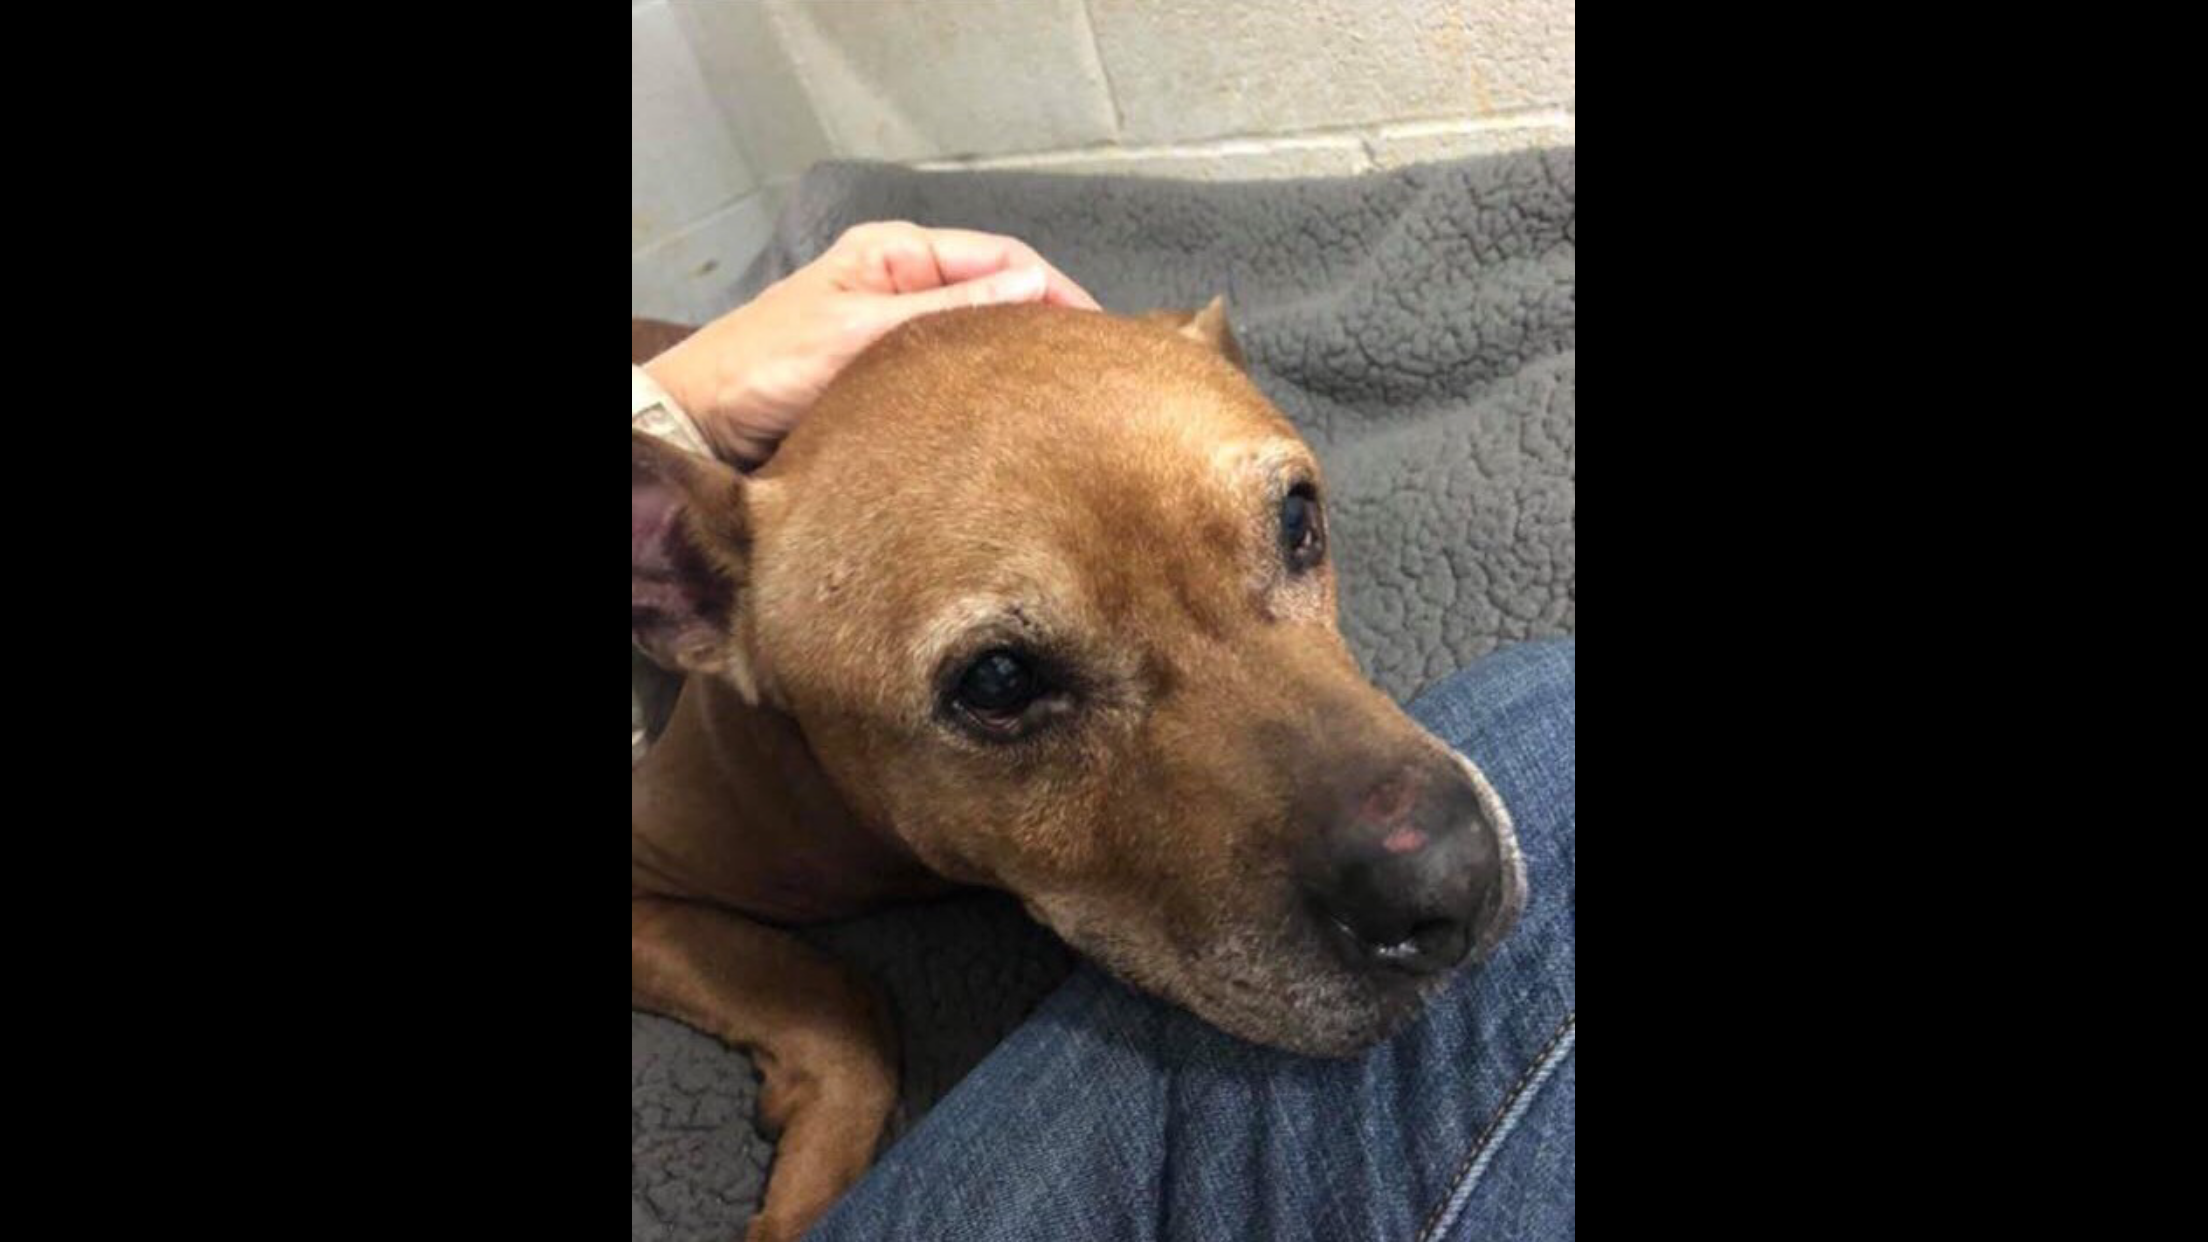 Scared and abandoned senior dog at SPCA in need of a loving